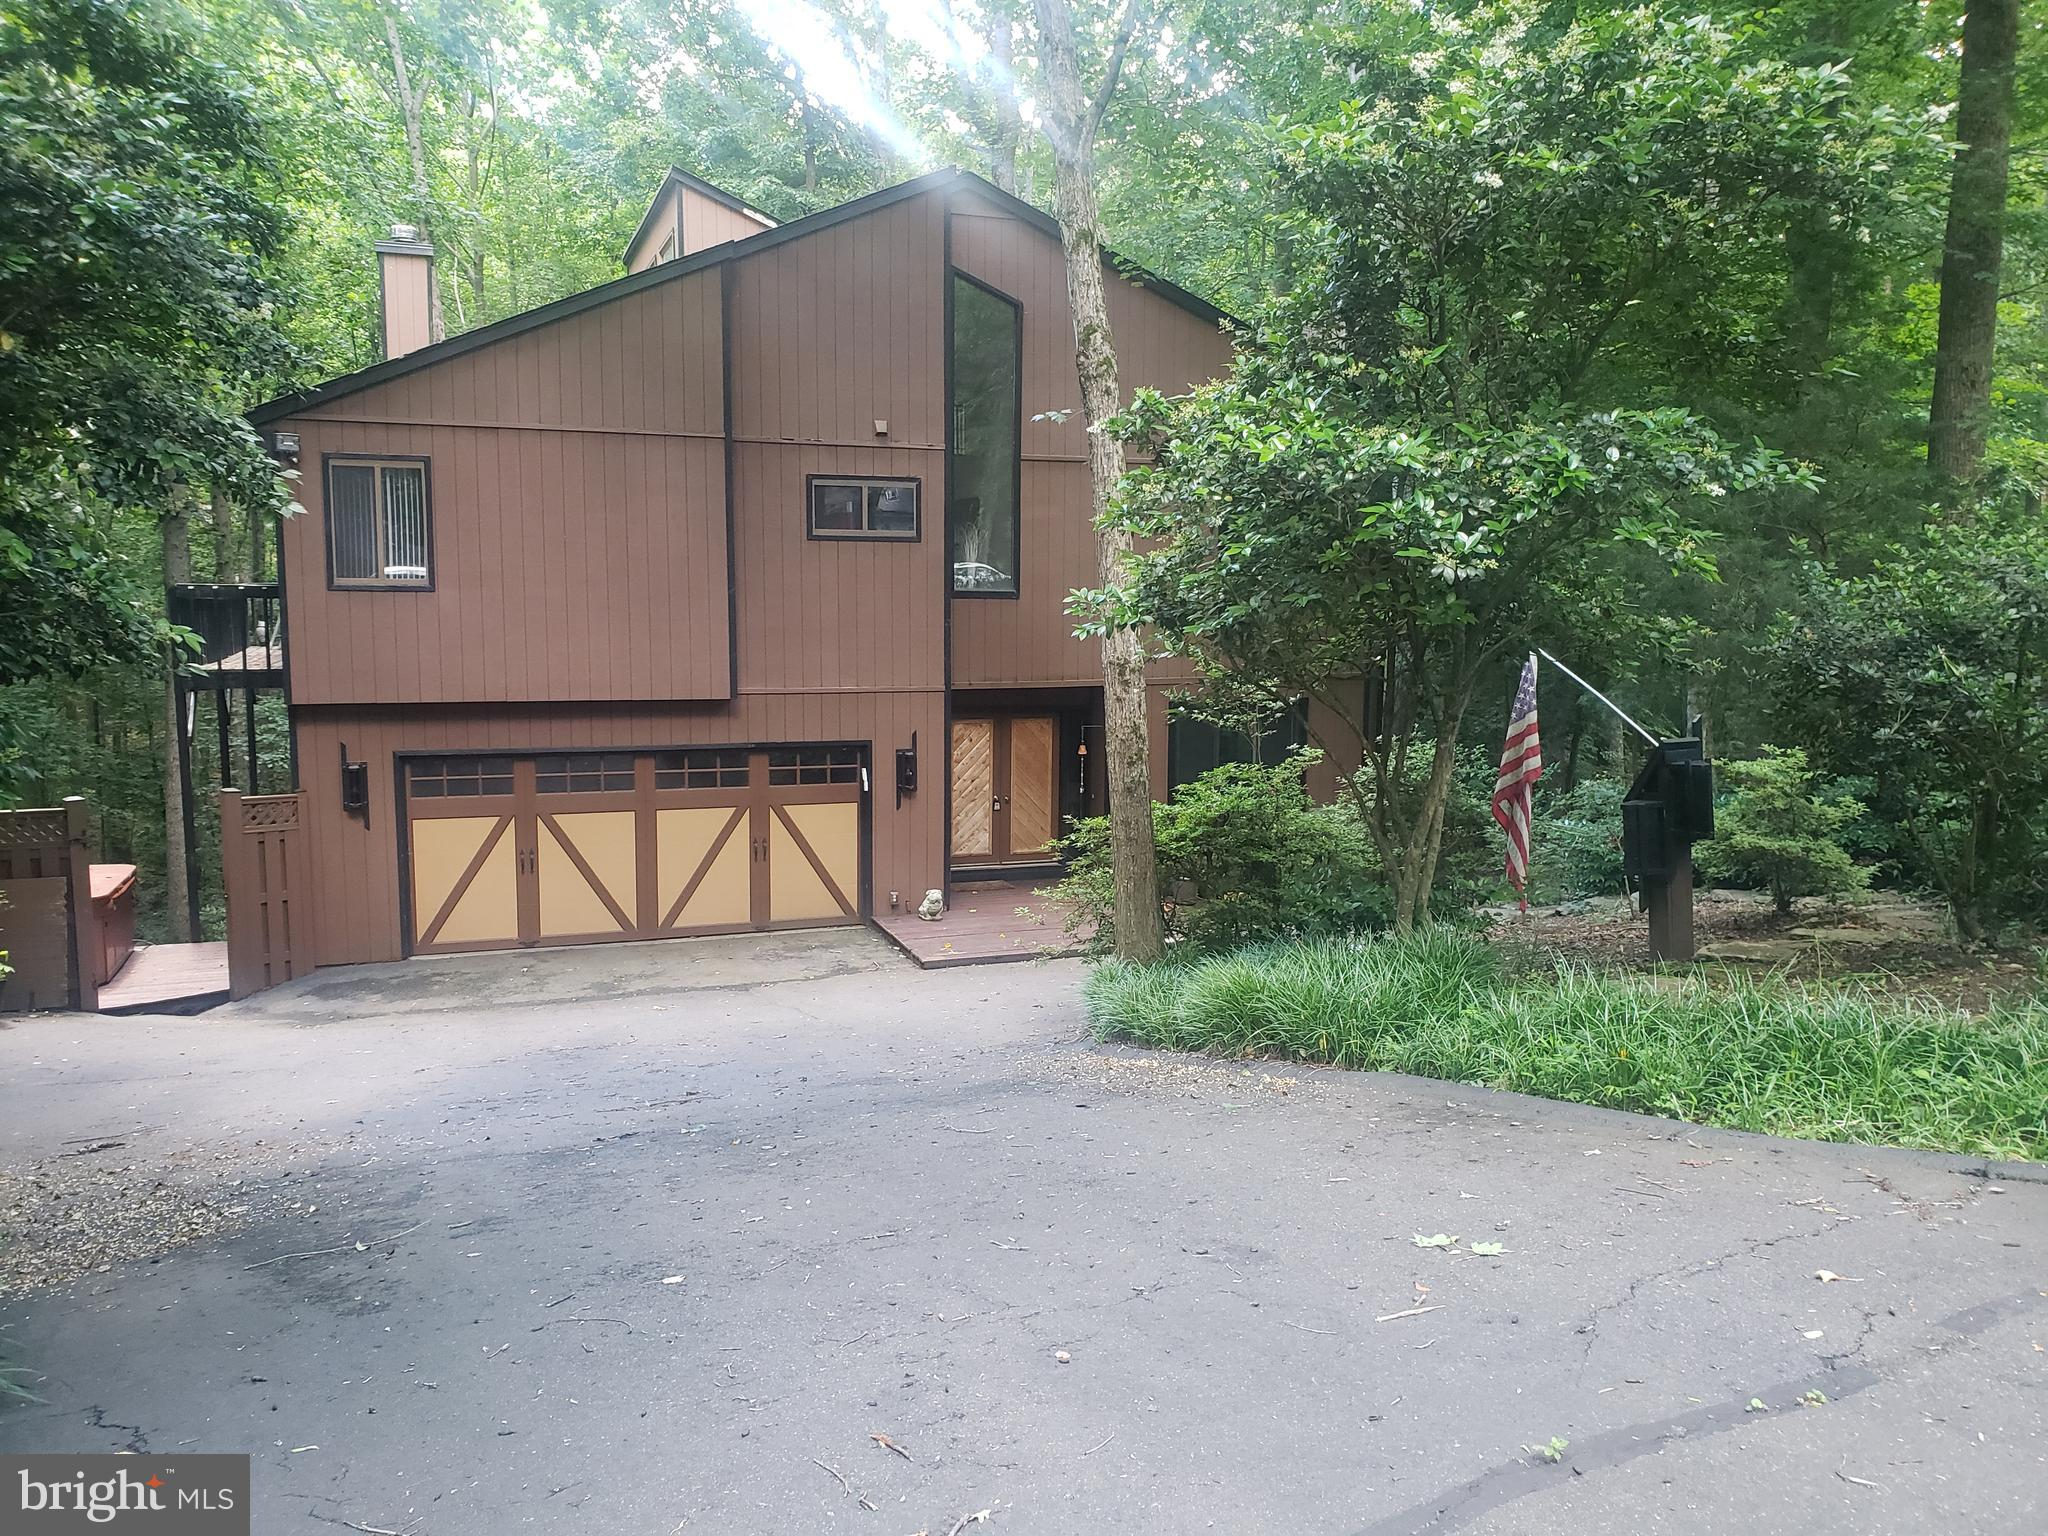 Spacious 3 finished lvl home in popular Occoquan Forest ready for new owners! 3/4 BR 3 1/2 bath,  2 car garage, FP in LR, wood stove in 2 story great room & pellet stove in LL. Remodeled kitchen with cherry cabinetry, stainless appliances, bay window over sink &  corian counters with corian sink. Wood  & slate floors main lvl, wood on stairs. Multiple decks & scenic sunroom off great room with wooded views! Upper lvl loft off owners suite.